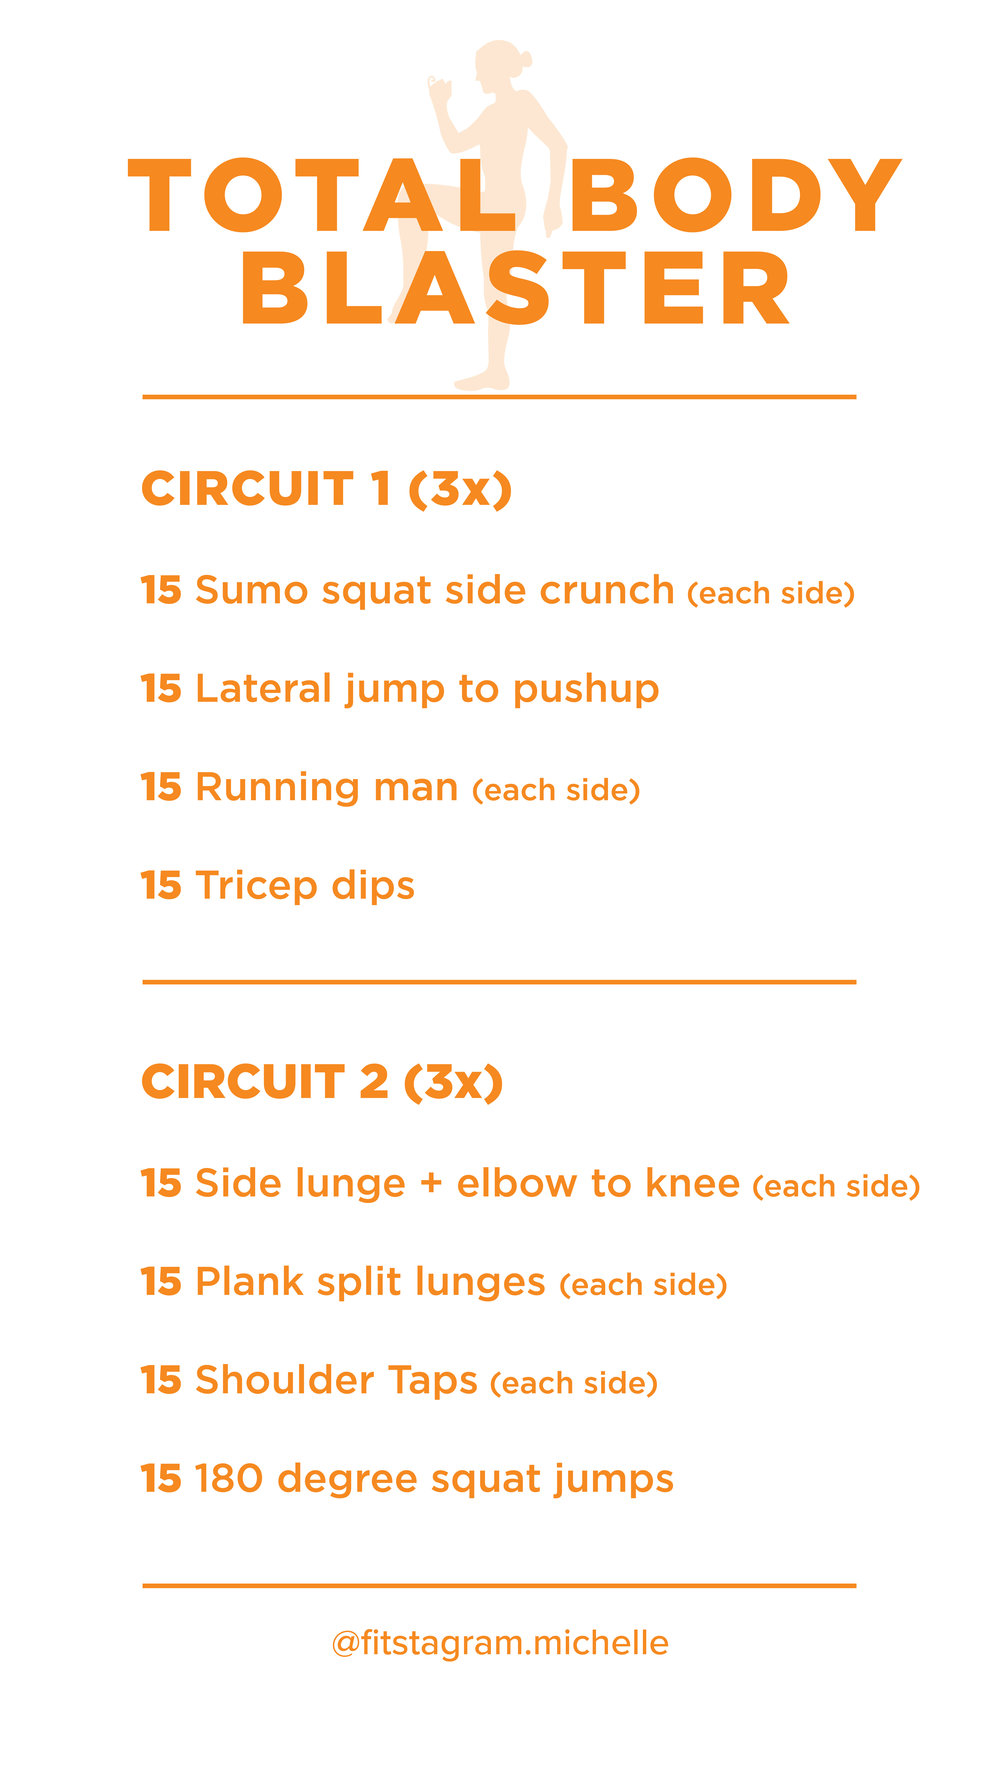 Total Body Blaster Instagram Story Image. Share this on your IG and get ready to sweat.